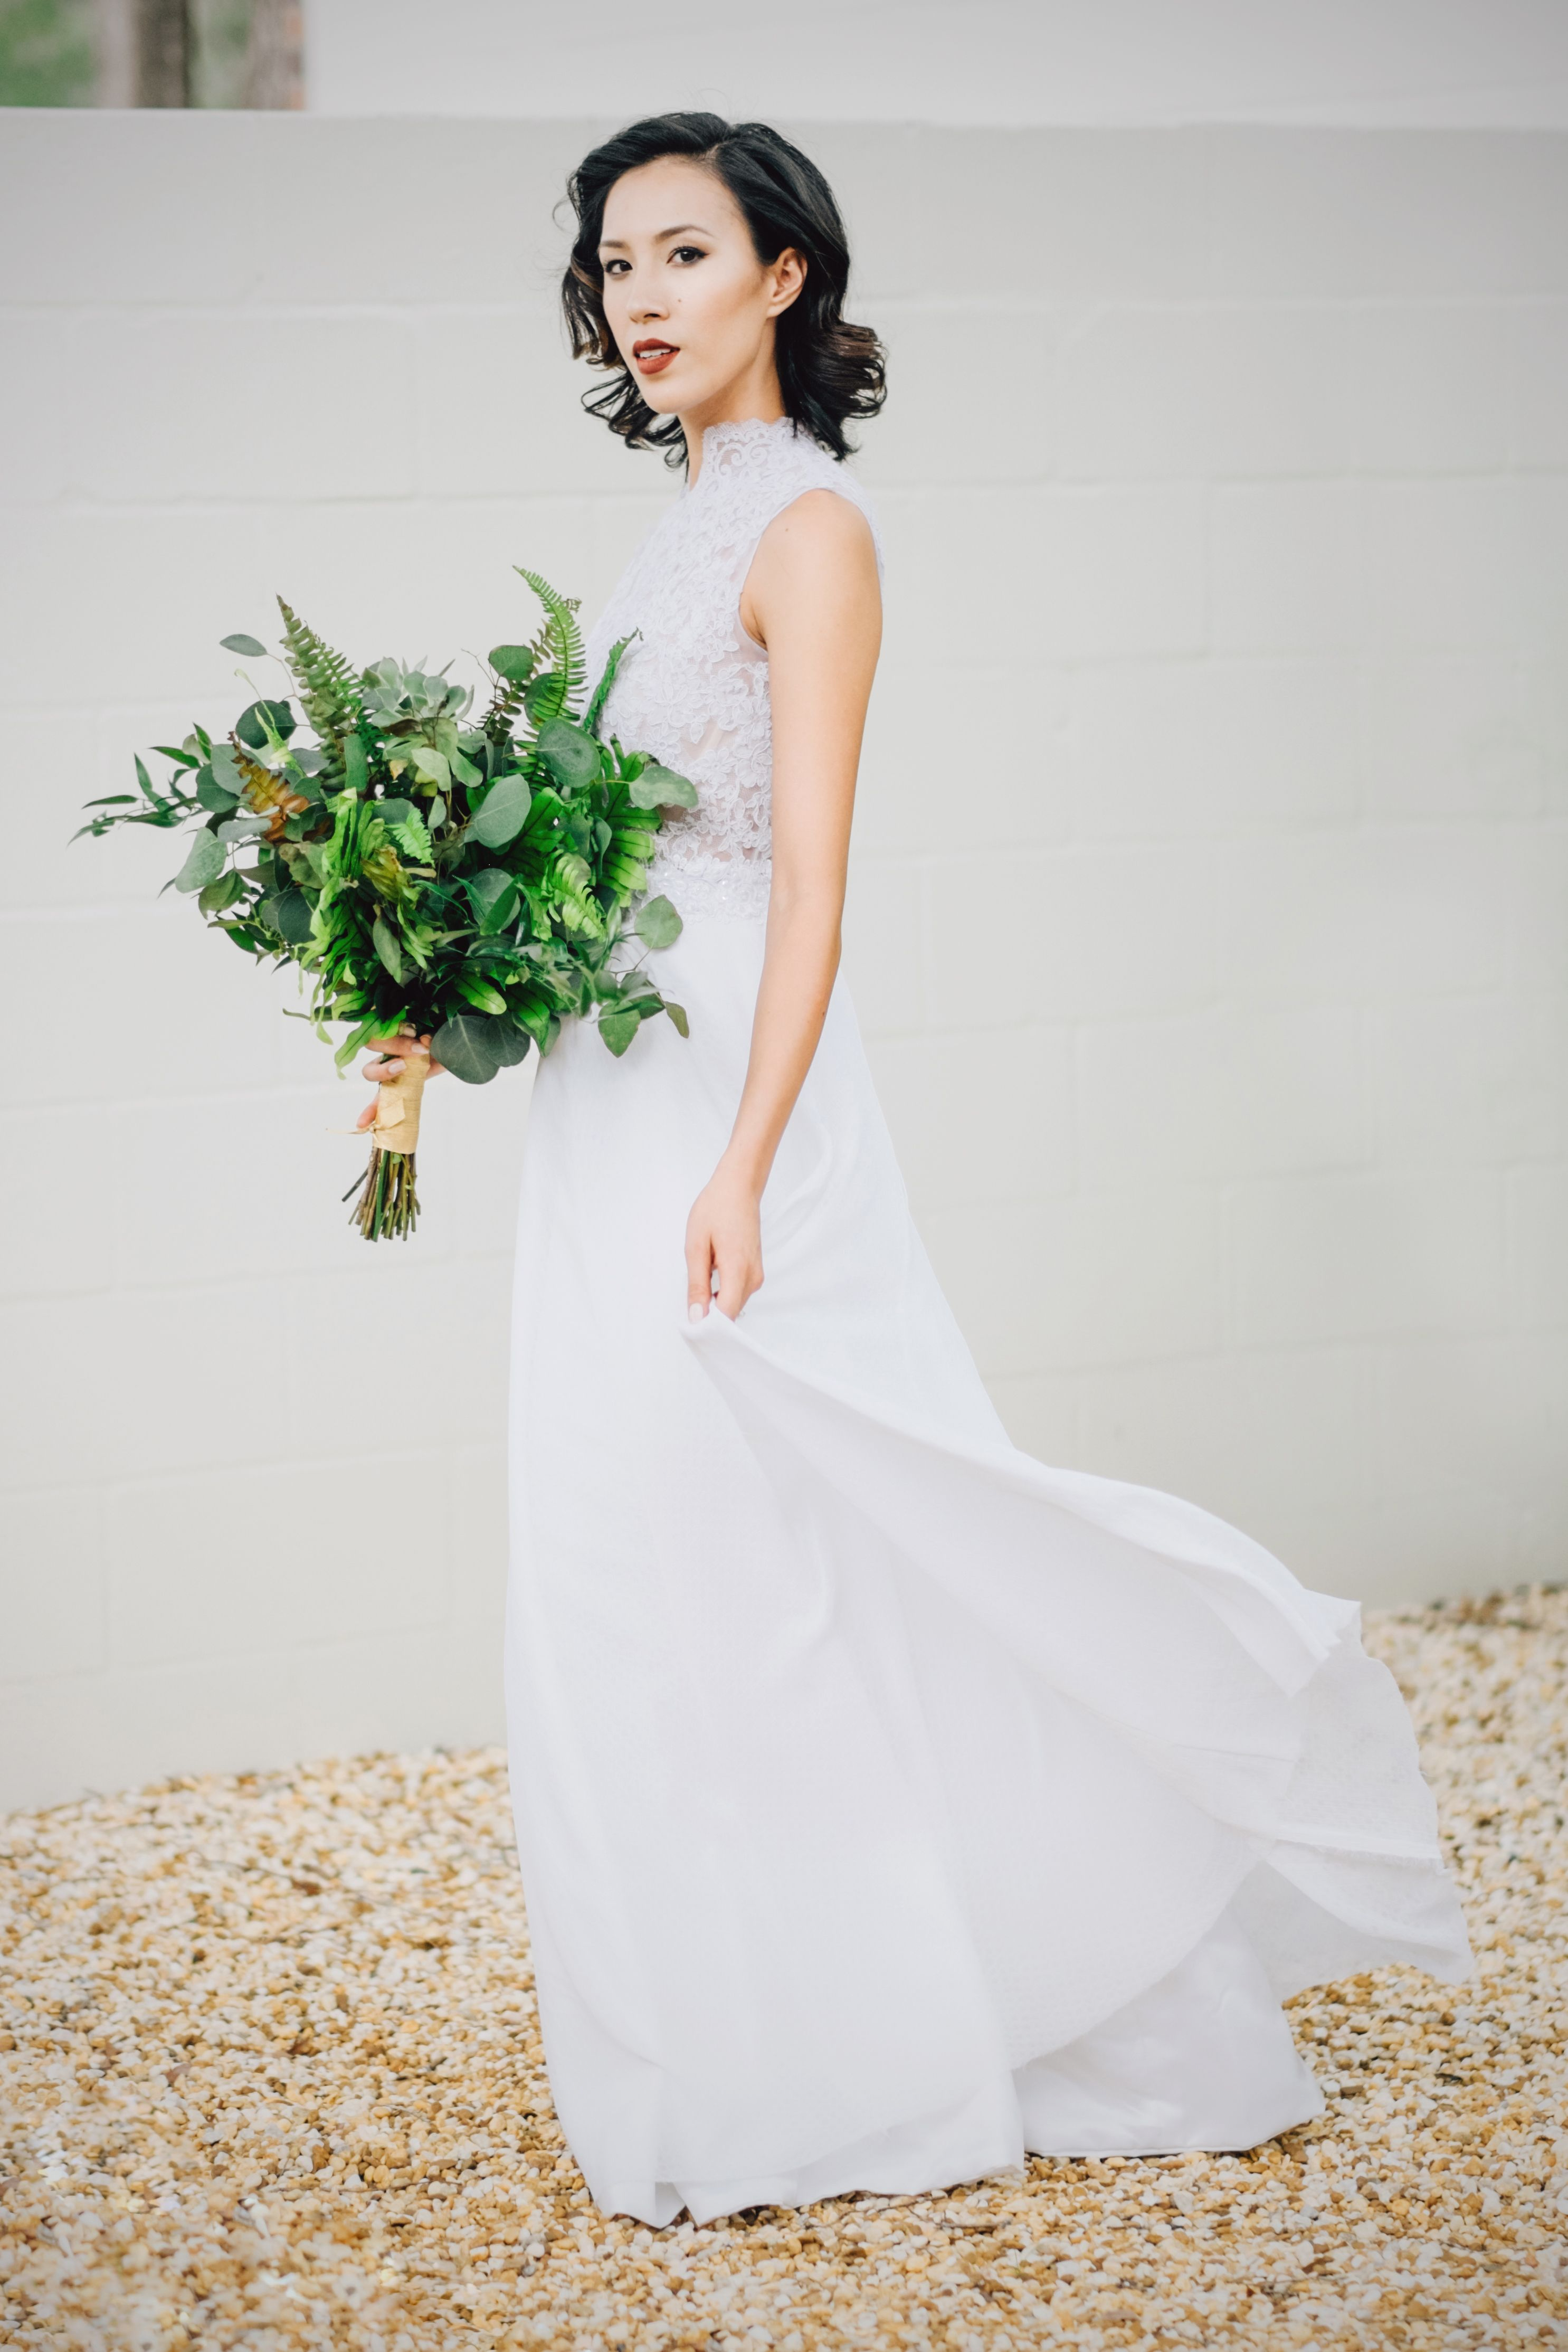 Green and white wedding dress  Pin by The Apostolic Wife on Green gold and white wedding  Pinterest